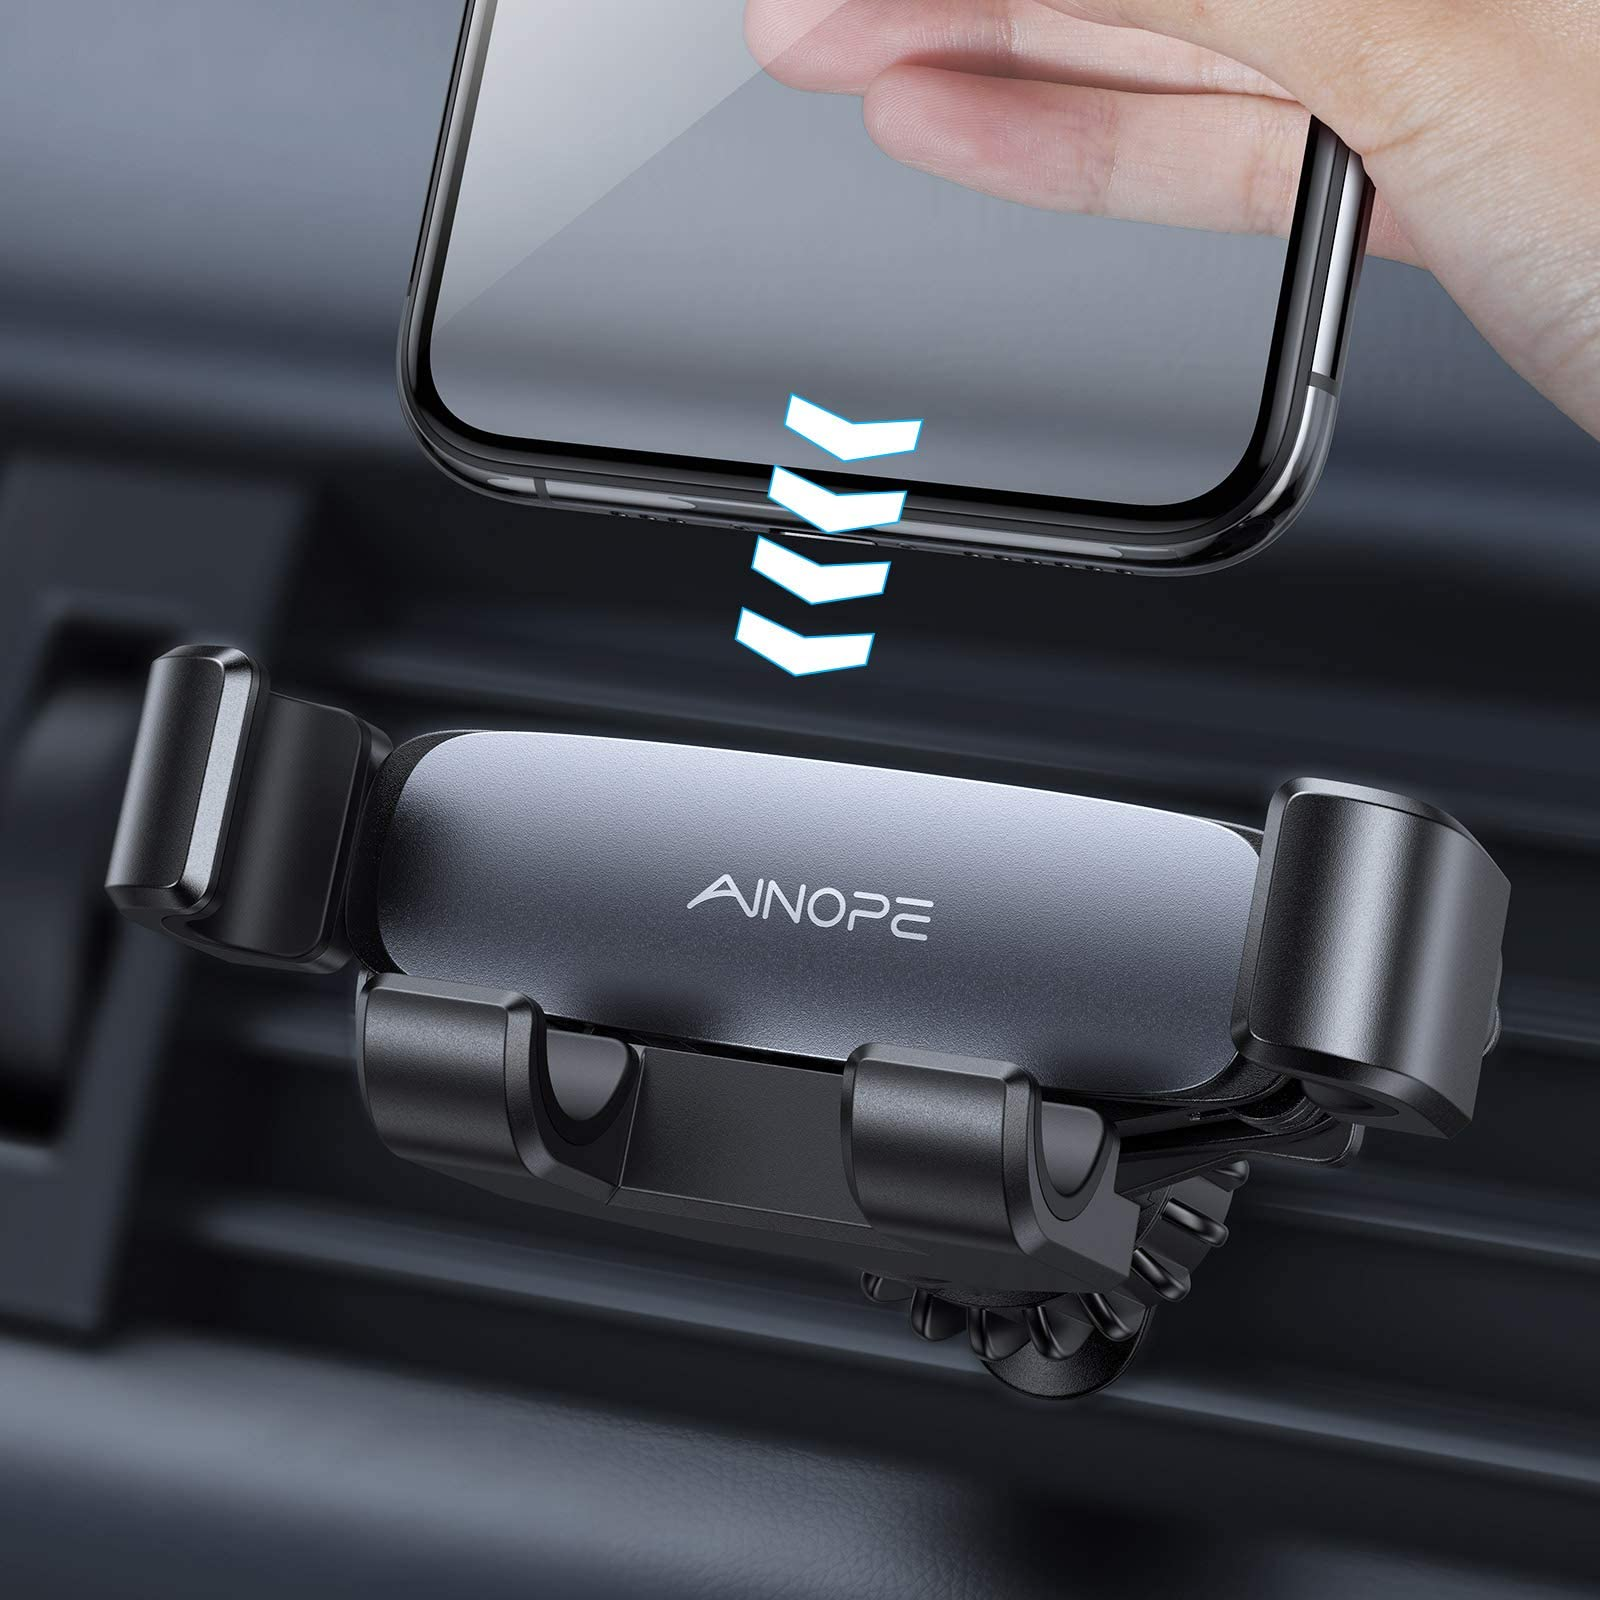 AINOPE Car Phone Holder Mount, 2021 Upgraded Gravity Phone Holder for Car Vent with Upgraded Hook Clip Auto Lock Hands Free Air Vent Cell Phone Car Mount Compatible with 4-7 inch Smartphone